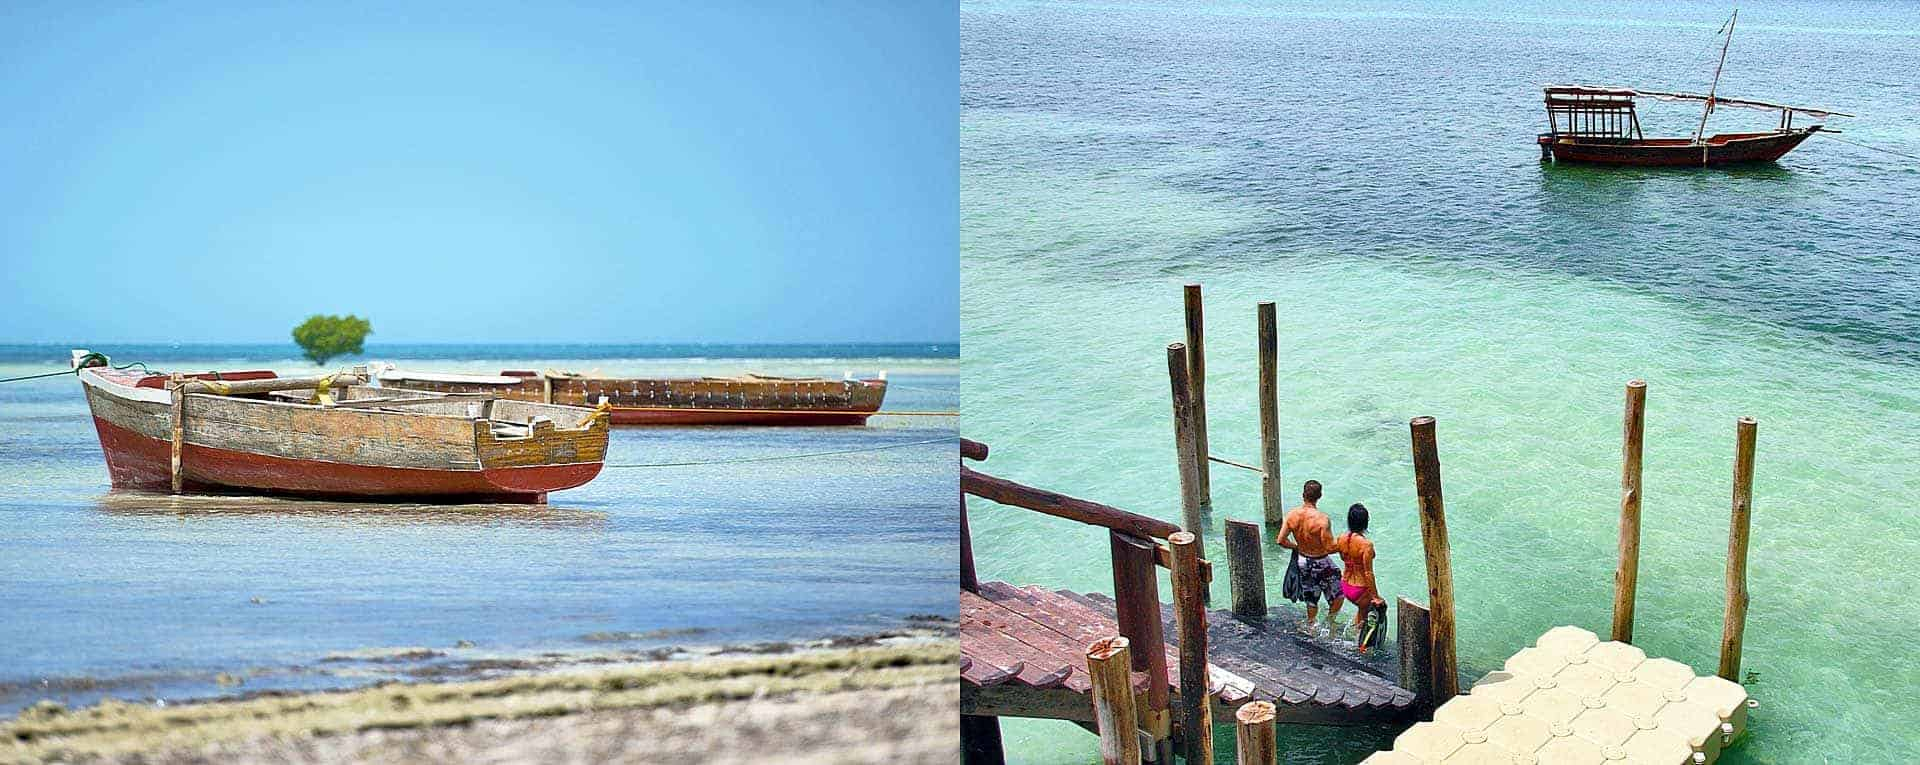 photos, images & pictures for sea cliff resort & spa in zanzibar